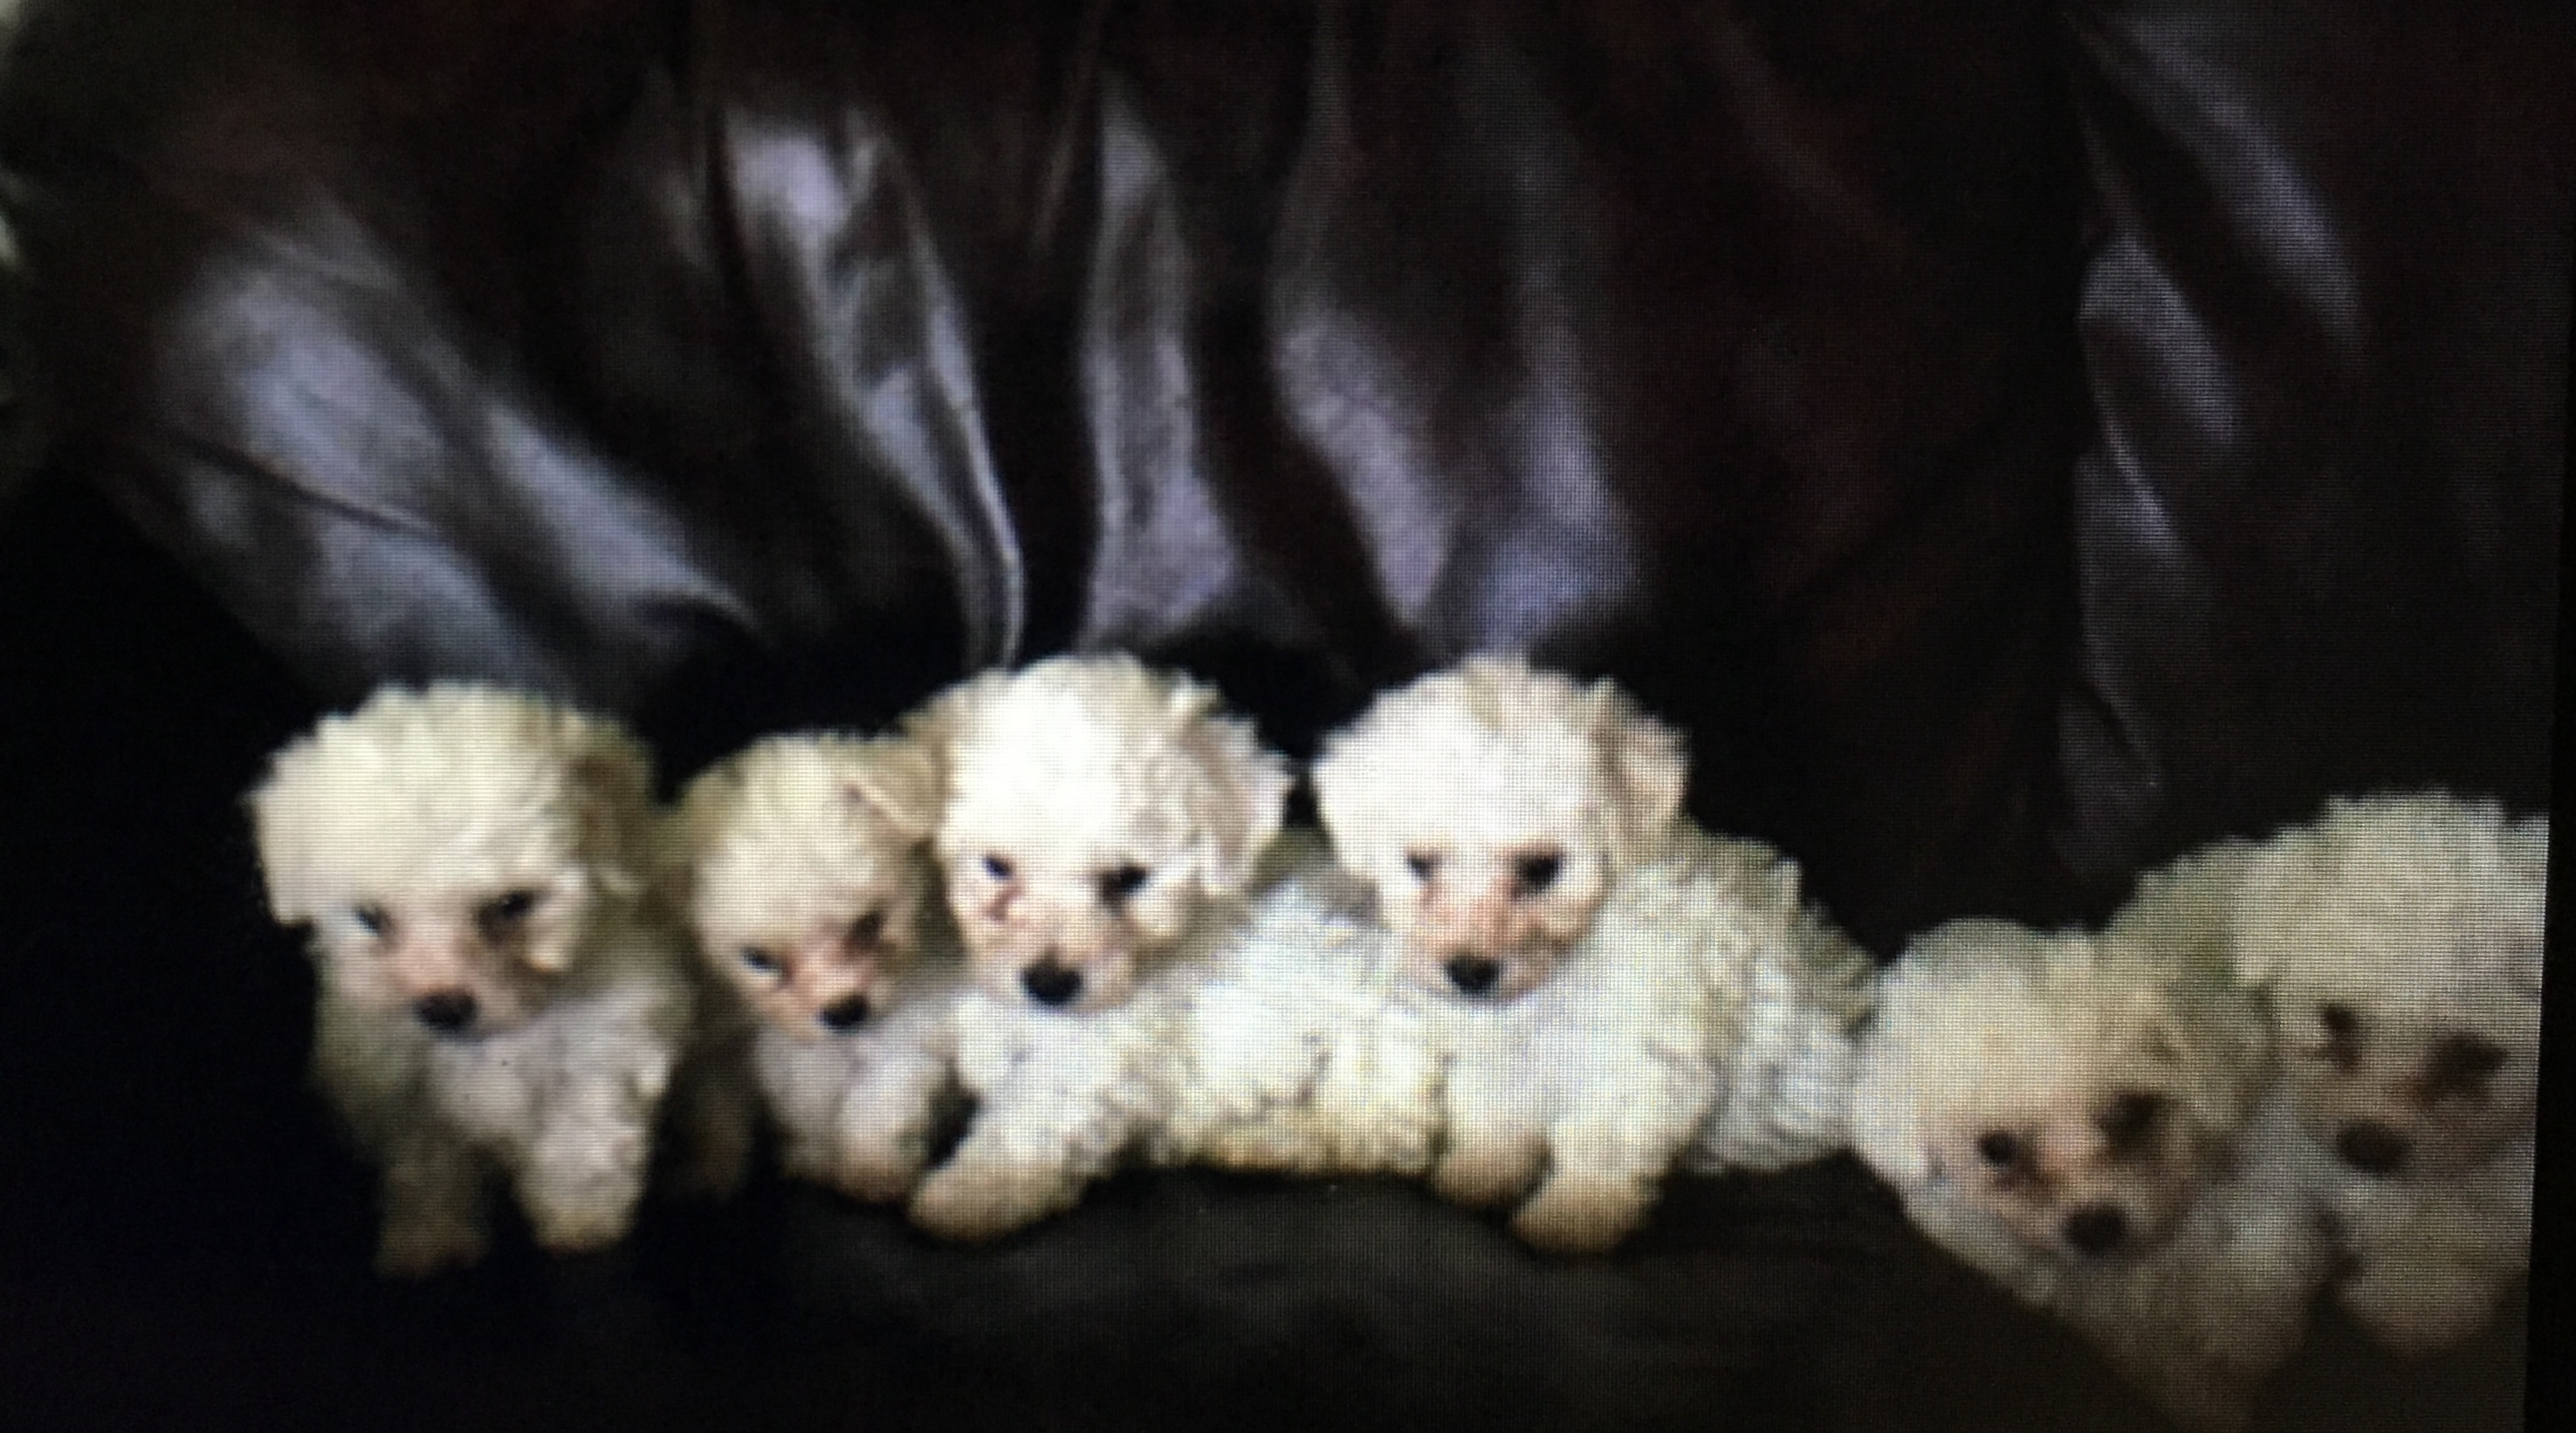 PennySaver | Male Havanese Puppy 4 Sale $200 in San